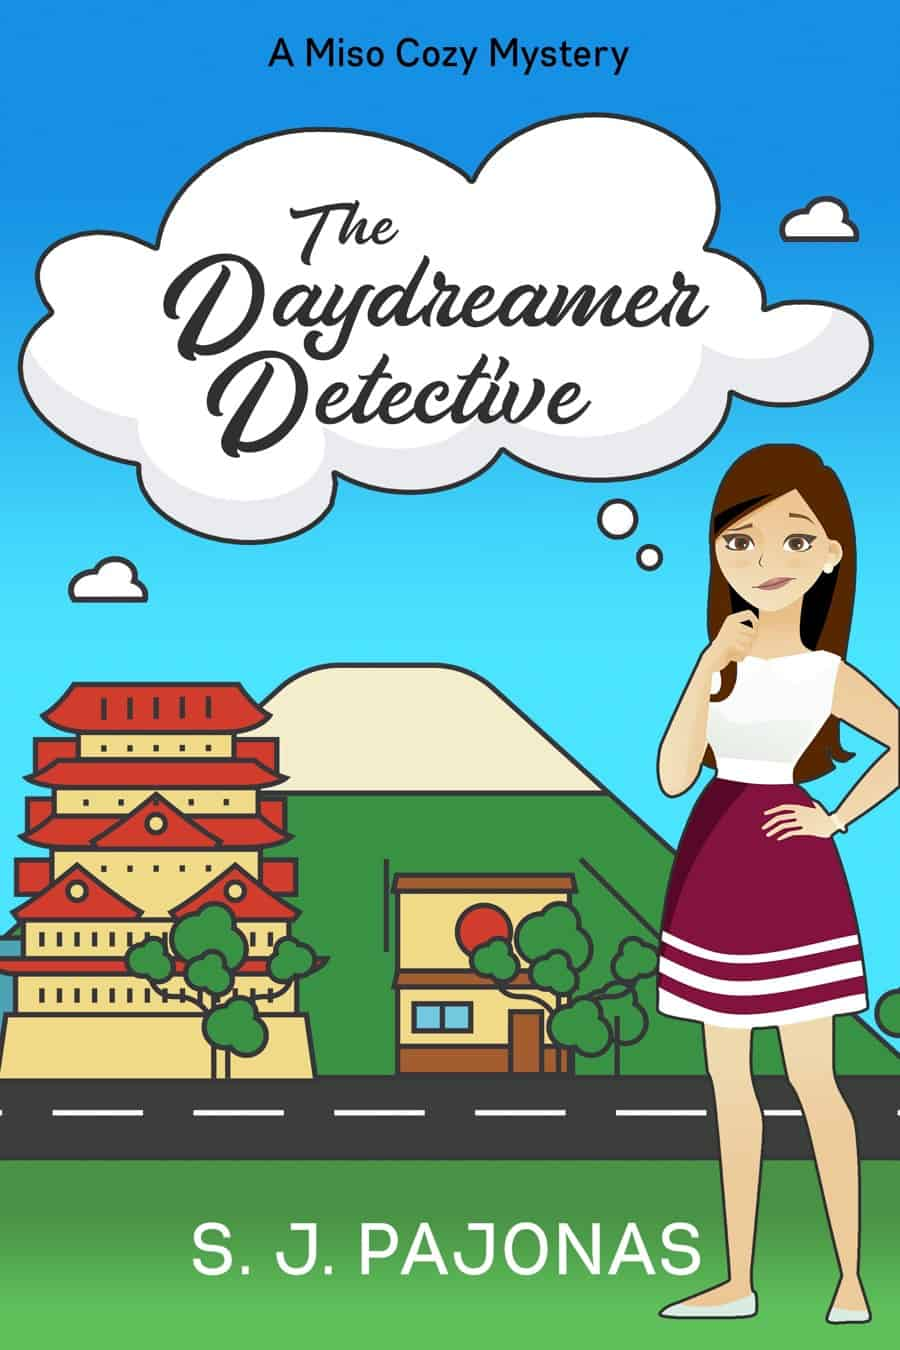 Get this #cozymystery set in Japan!